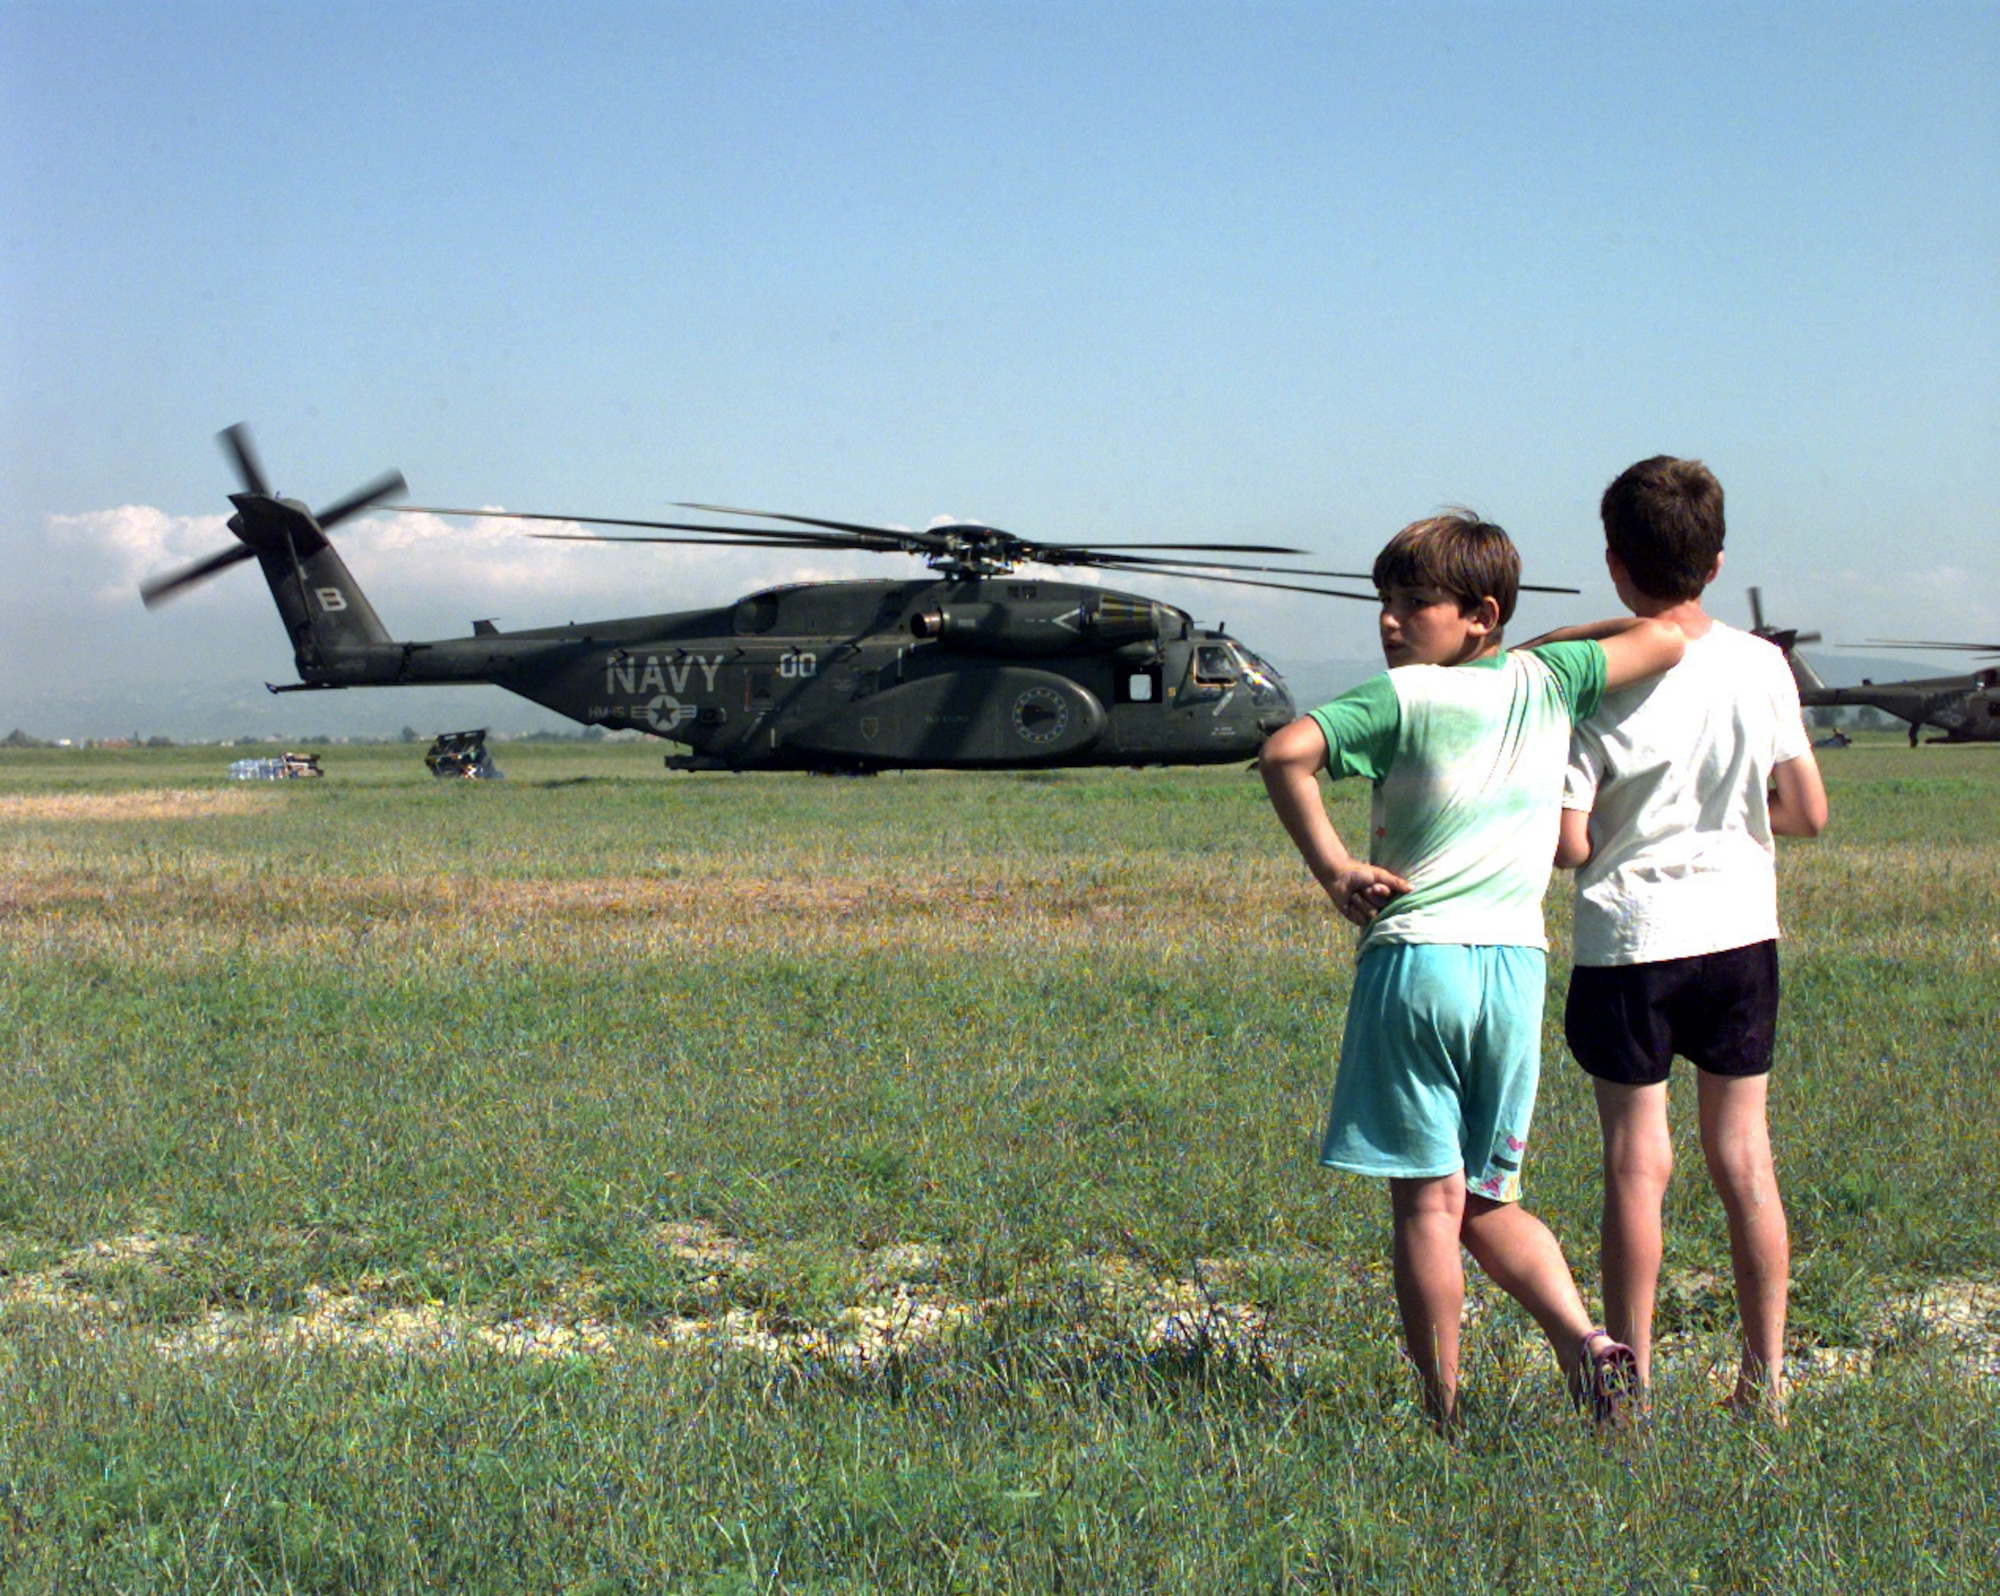 Two refugee children watch as relief supplies are unloaded from U.S. Navy MH-53E Sea Dragon helicopters at Camp Hope near Fier, Albania, on May 13, 1999, during Operation Sustain Hope. Sustain Hope brought in food, water, medicine, relief supplies, and established camps for refugees fleeing from the Former Republic of Yugoslavia. (U.S. Air Force photo by Senior Airman Michelle Leonard)